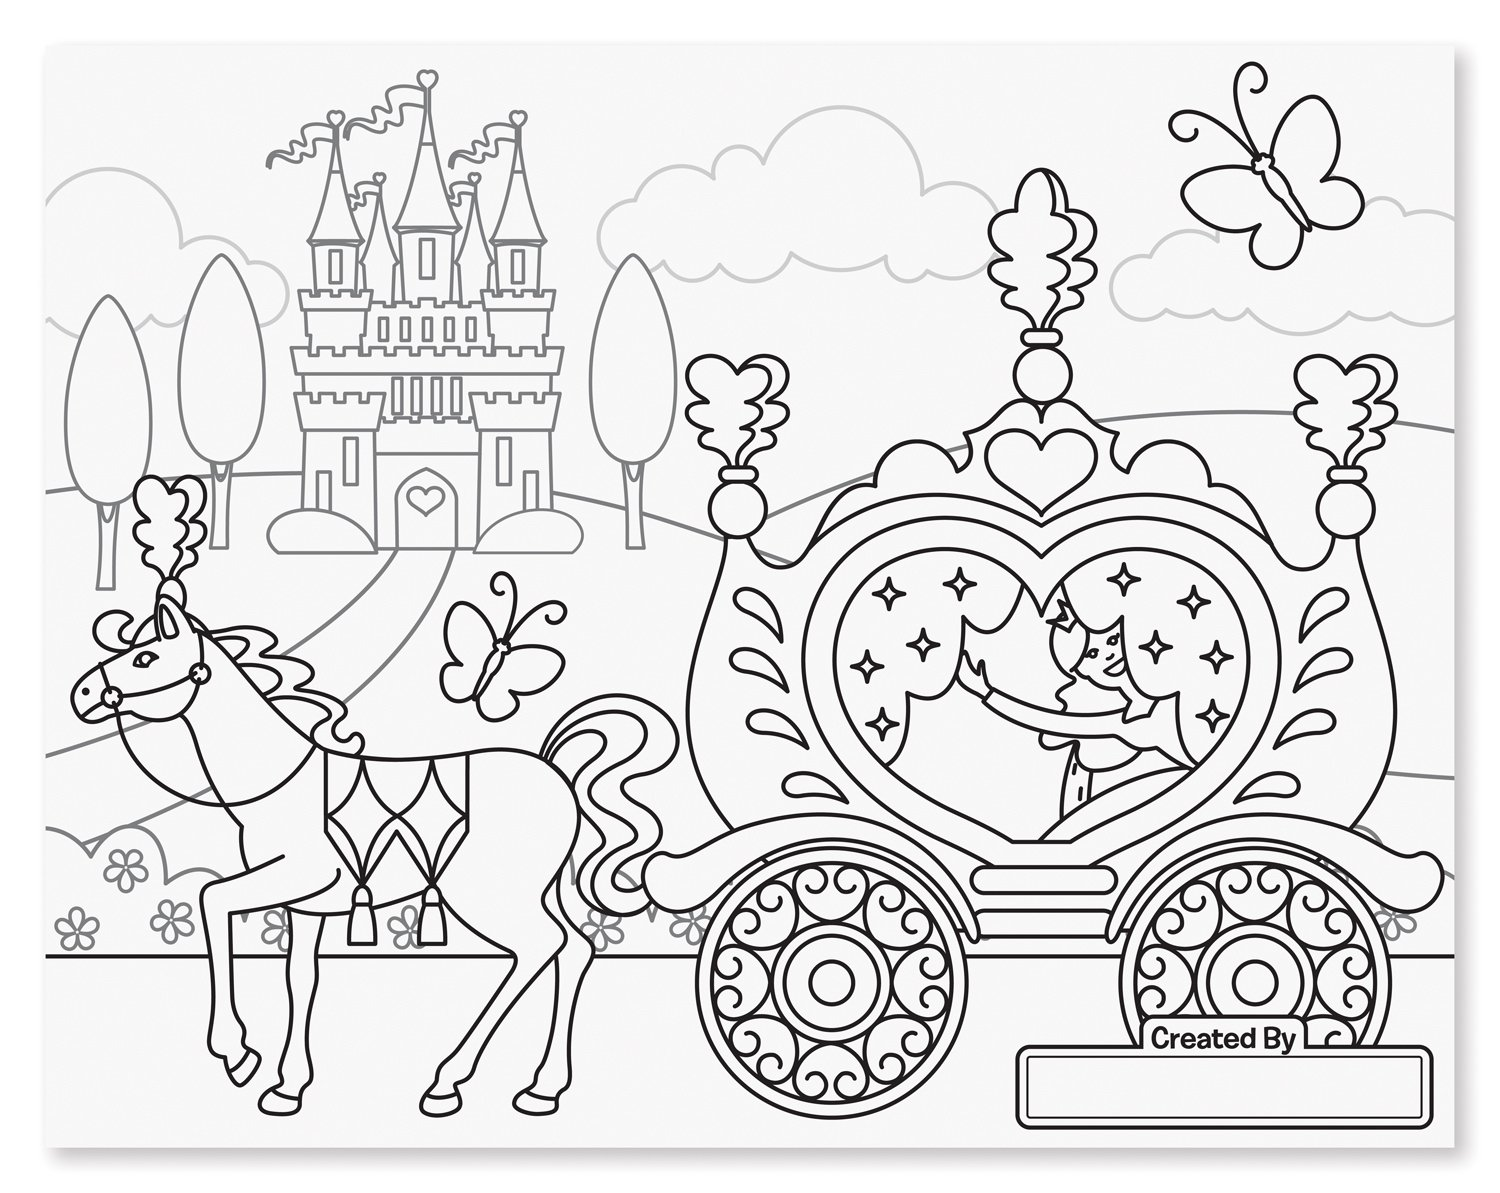 amazoncom melissa doug princess fairy jumbo coloring pad melissa doug toys games - Jumbo Coloring Pages